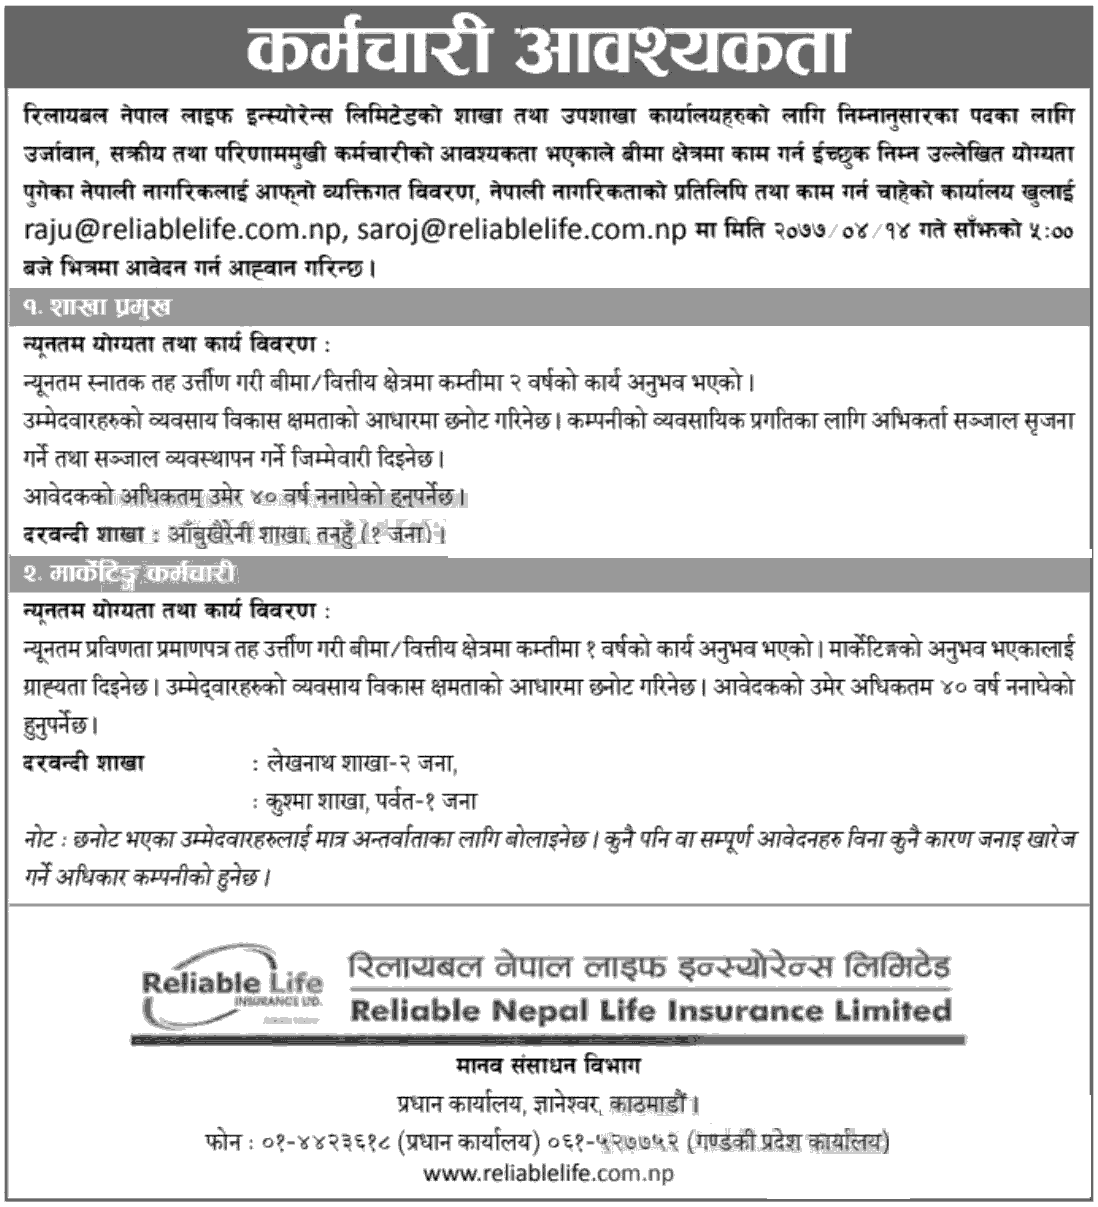 https://www.collegenp.com//uploads/2020/07/Reliable-Nepal-Life-Insurance-Limited-Vacancy-Notice.png